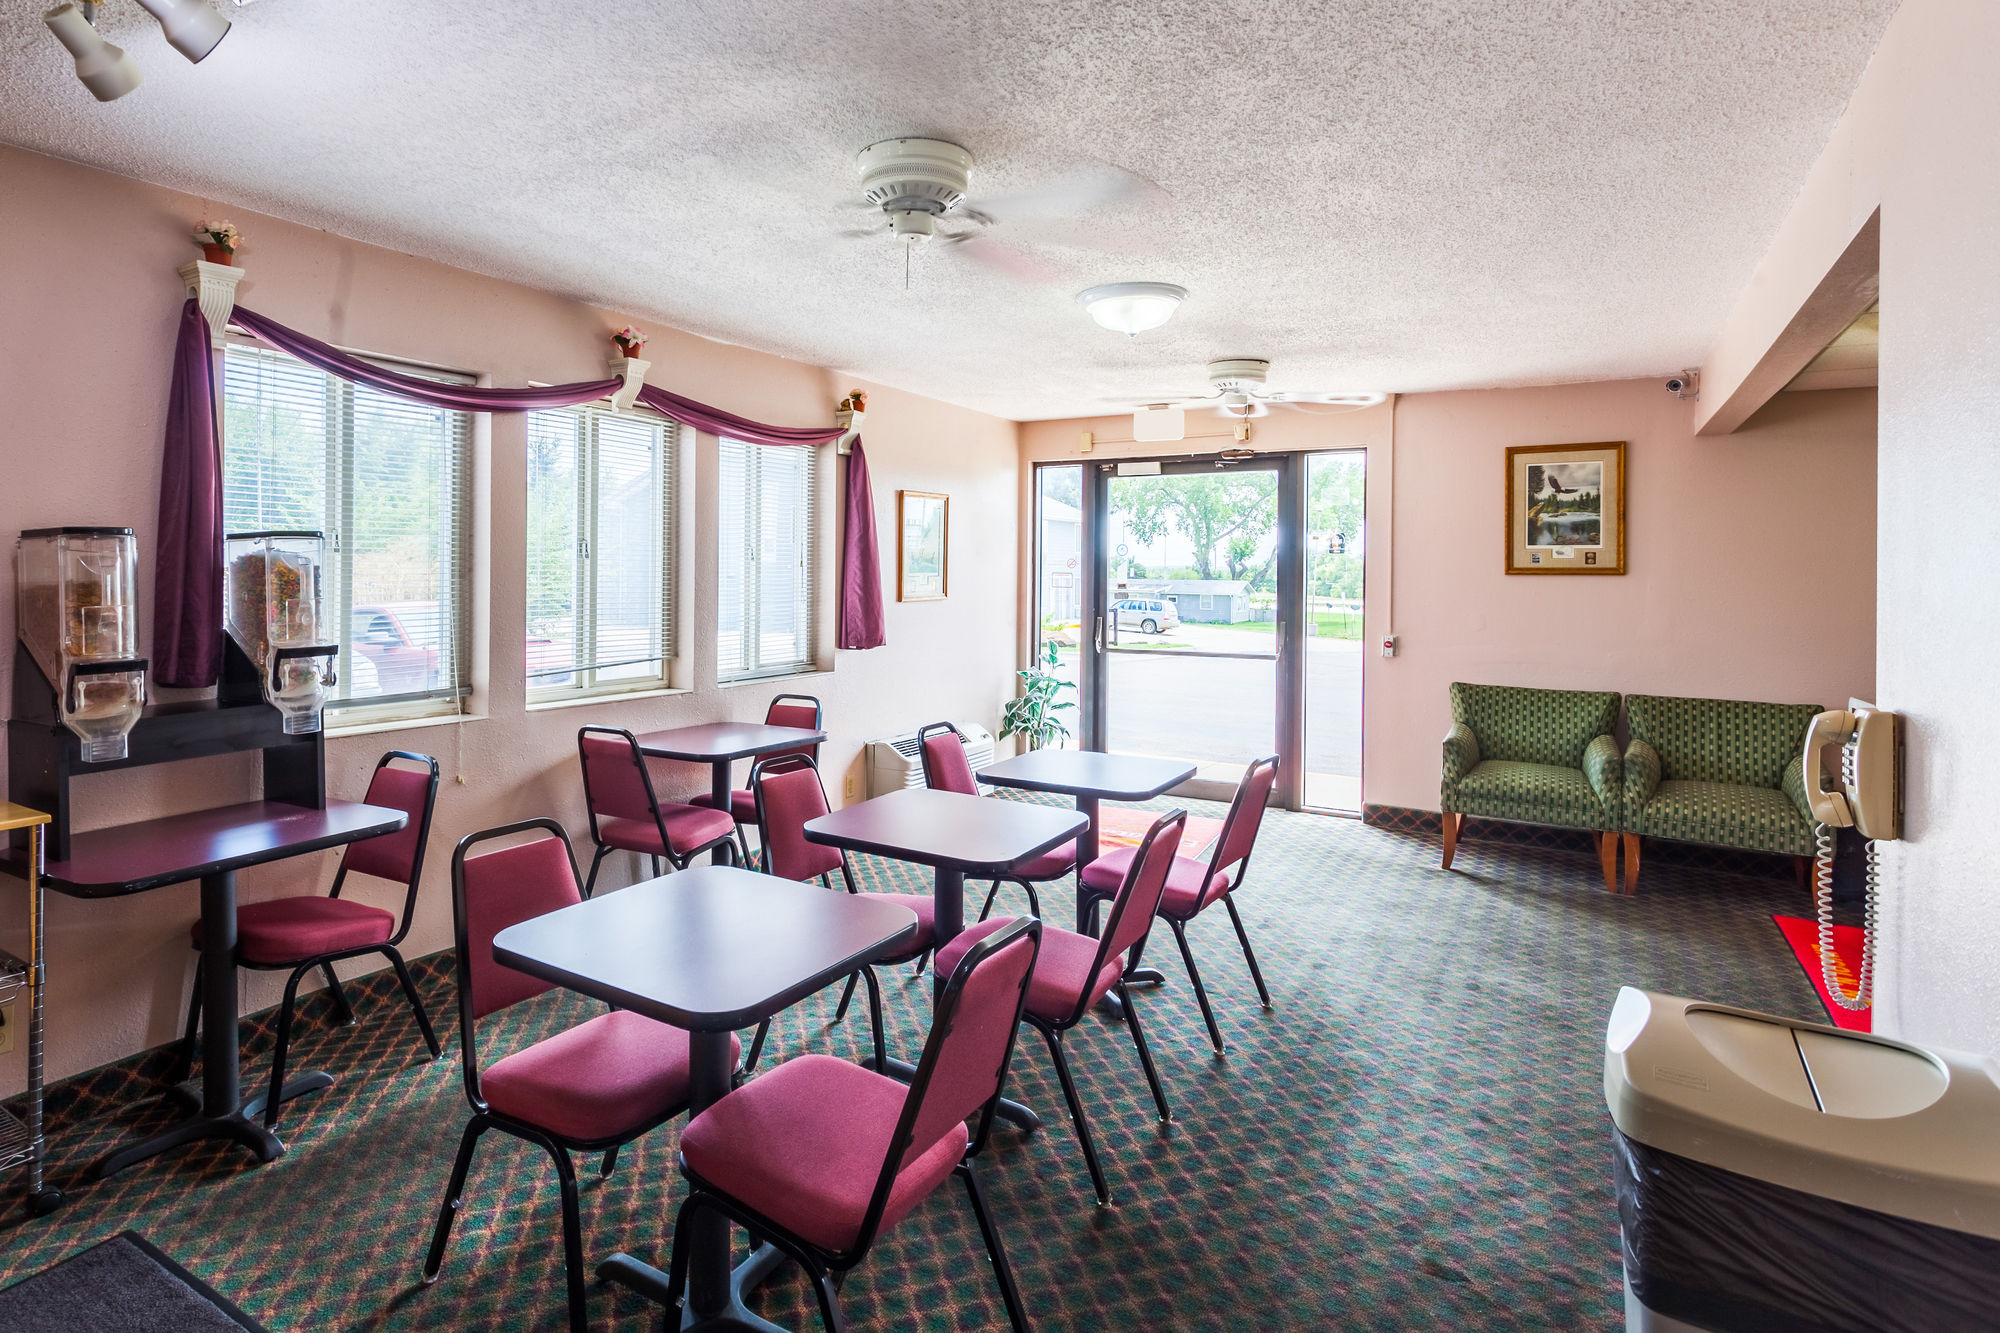 deals lincoln ne fitness room in extended center hotel townhouse stay us downtown